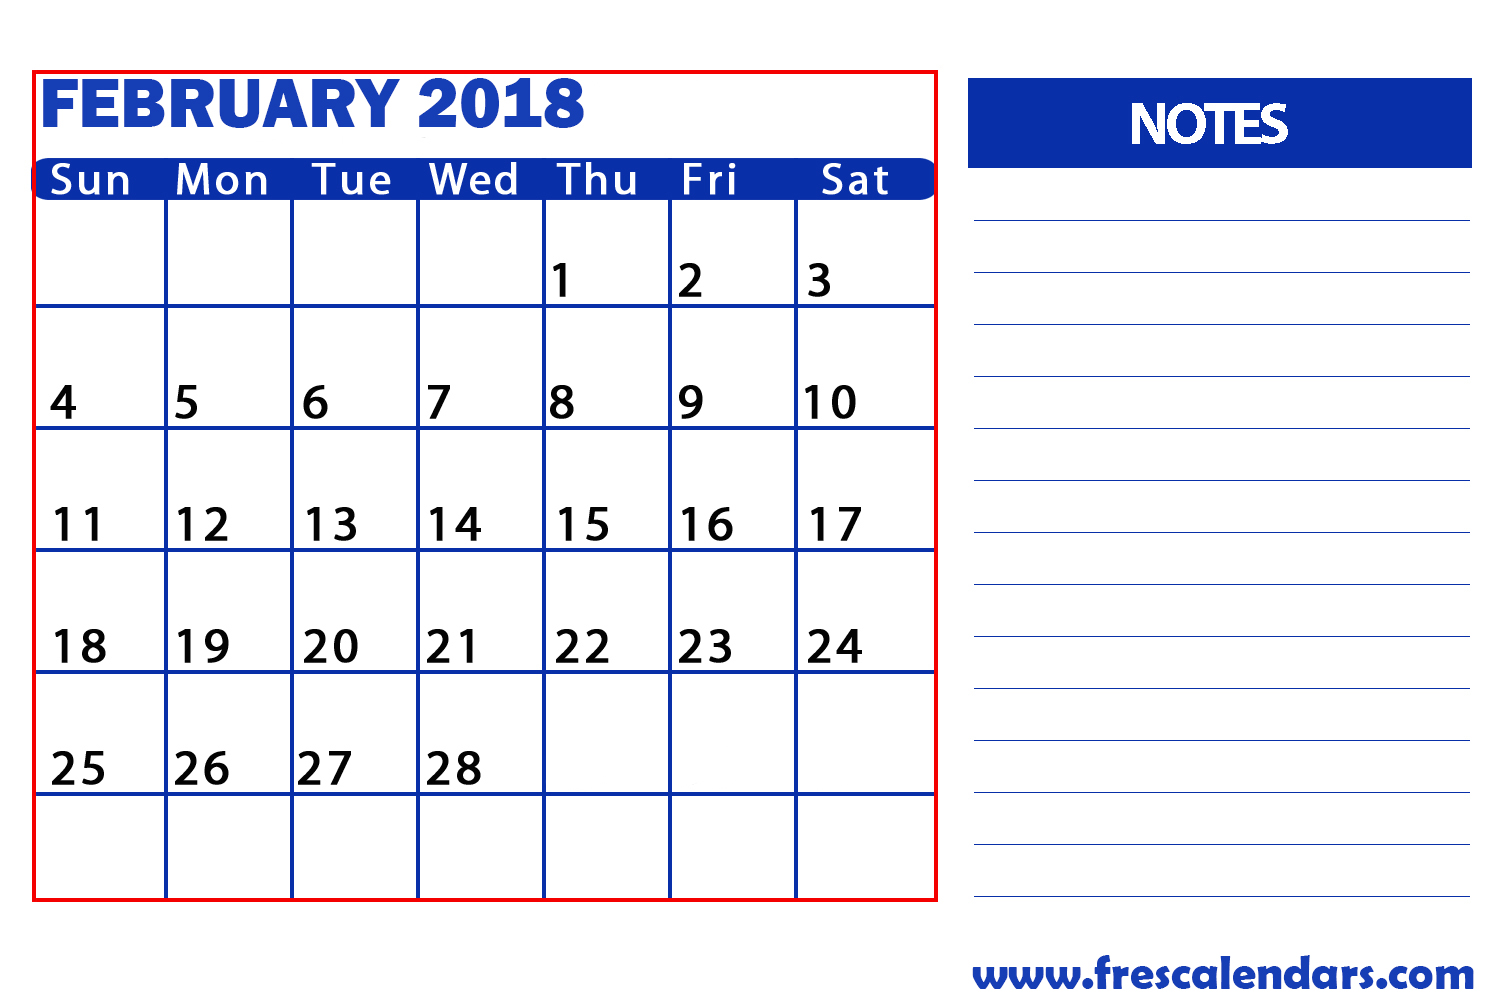 February 2018 Calendar With Notes Space